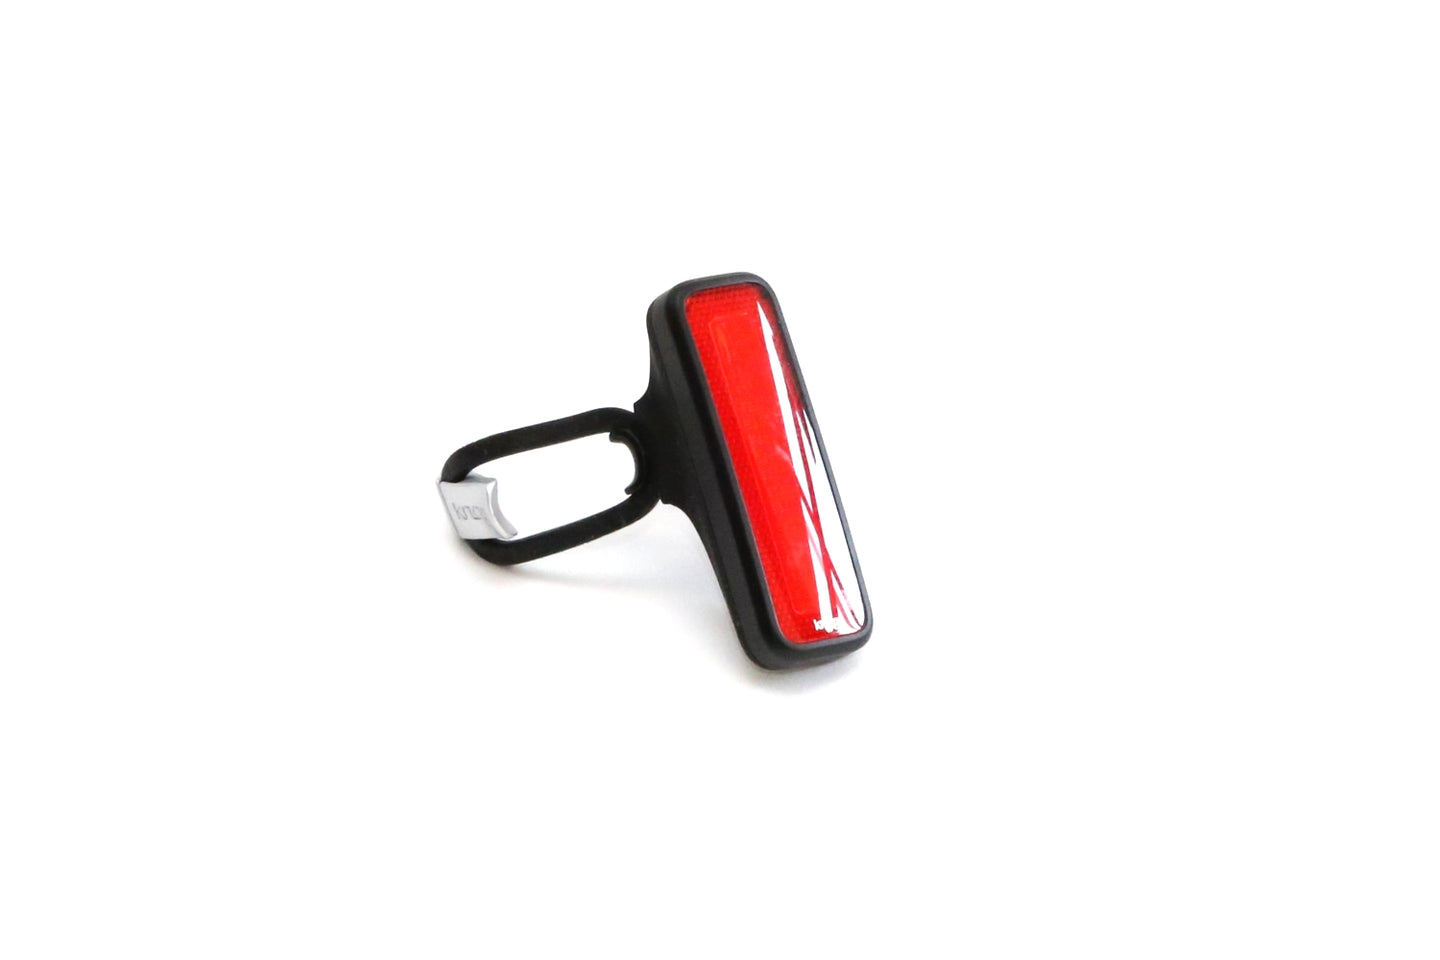 Knog Blinder MOB Mr Chips V Rear Light